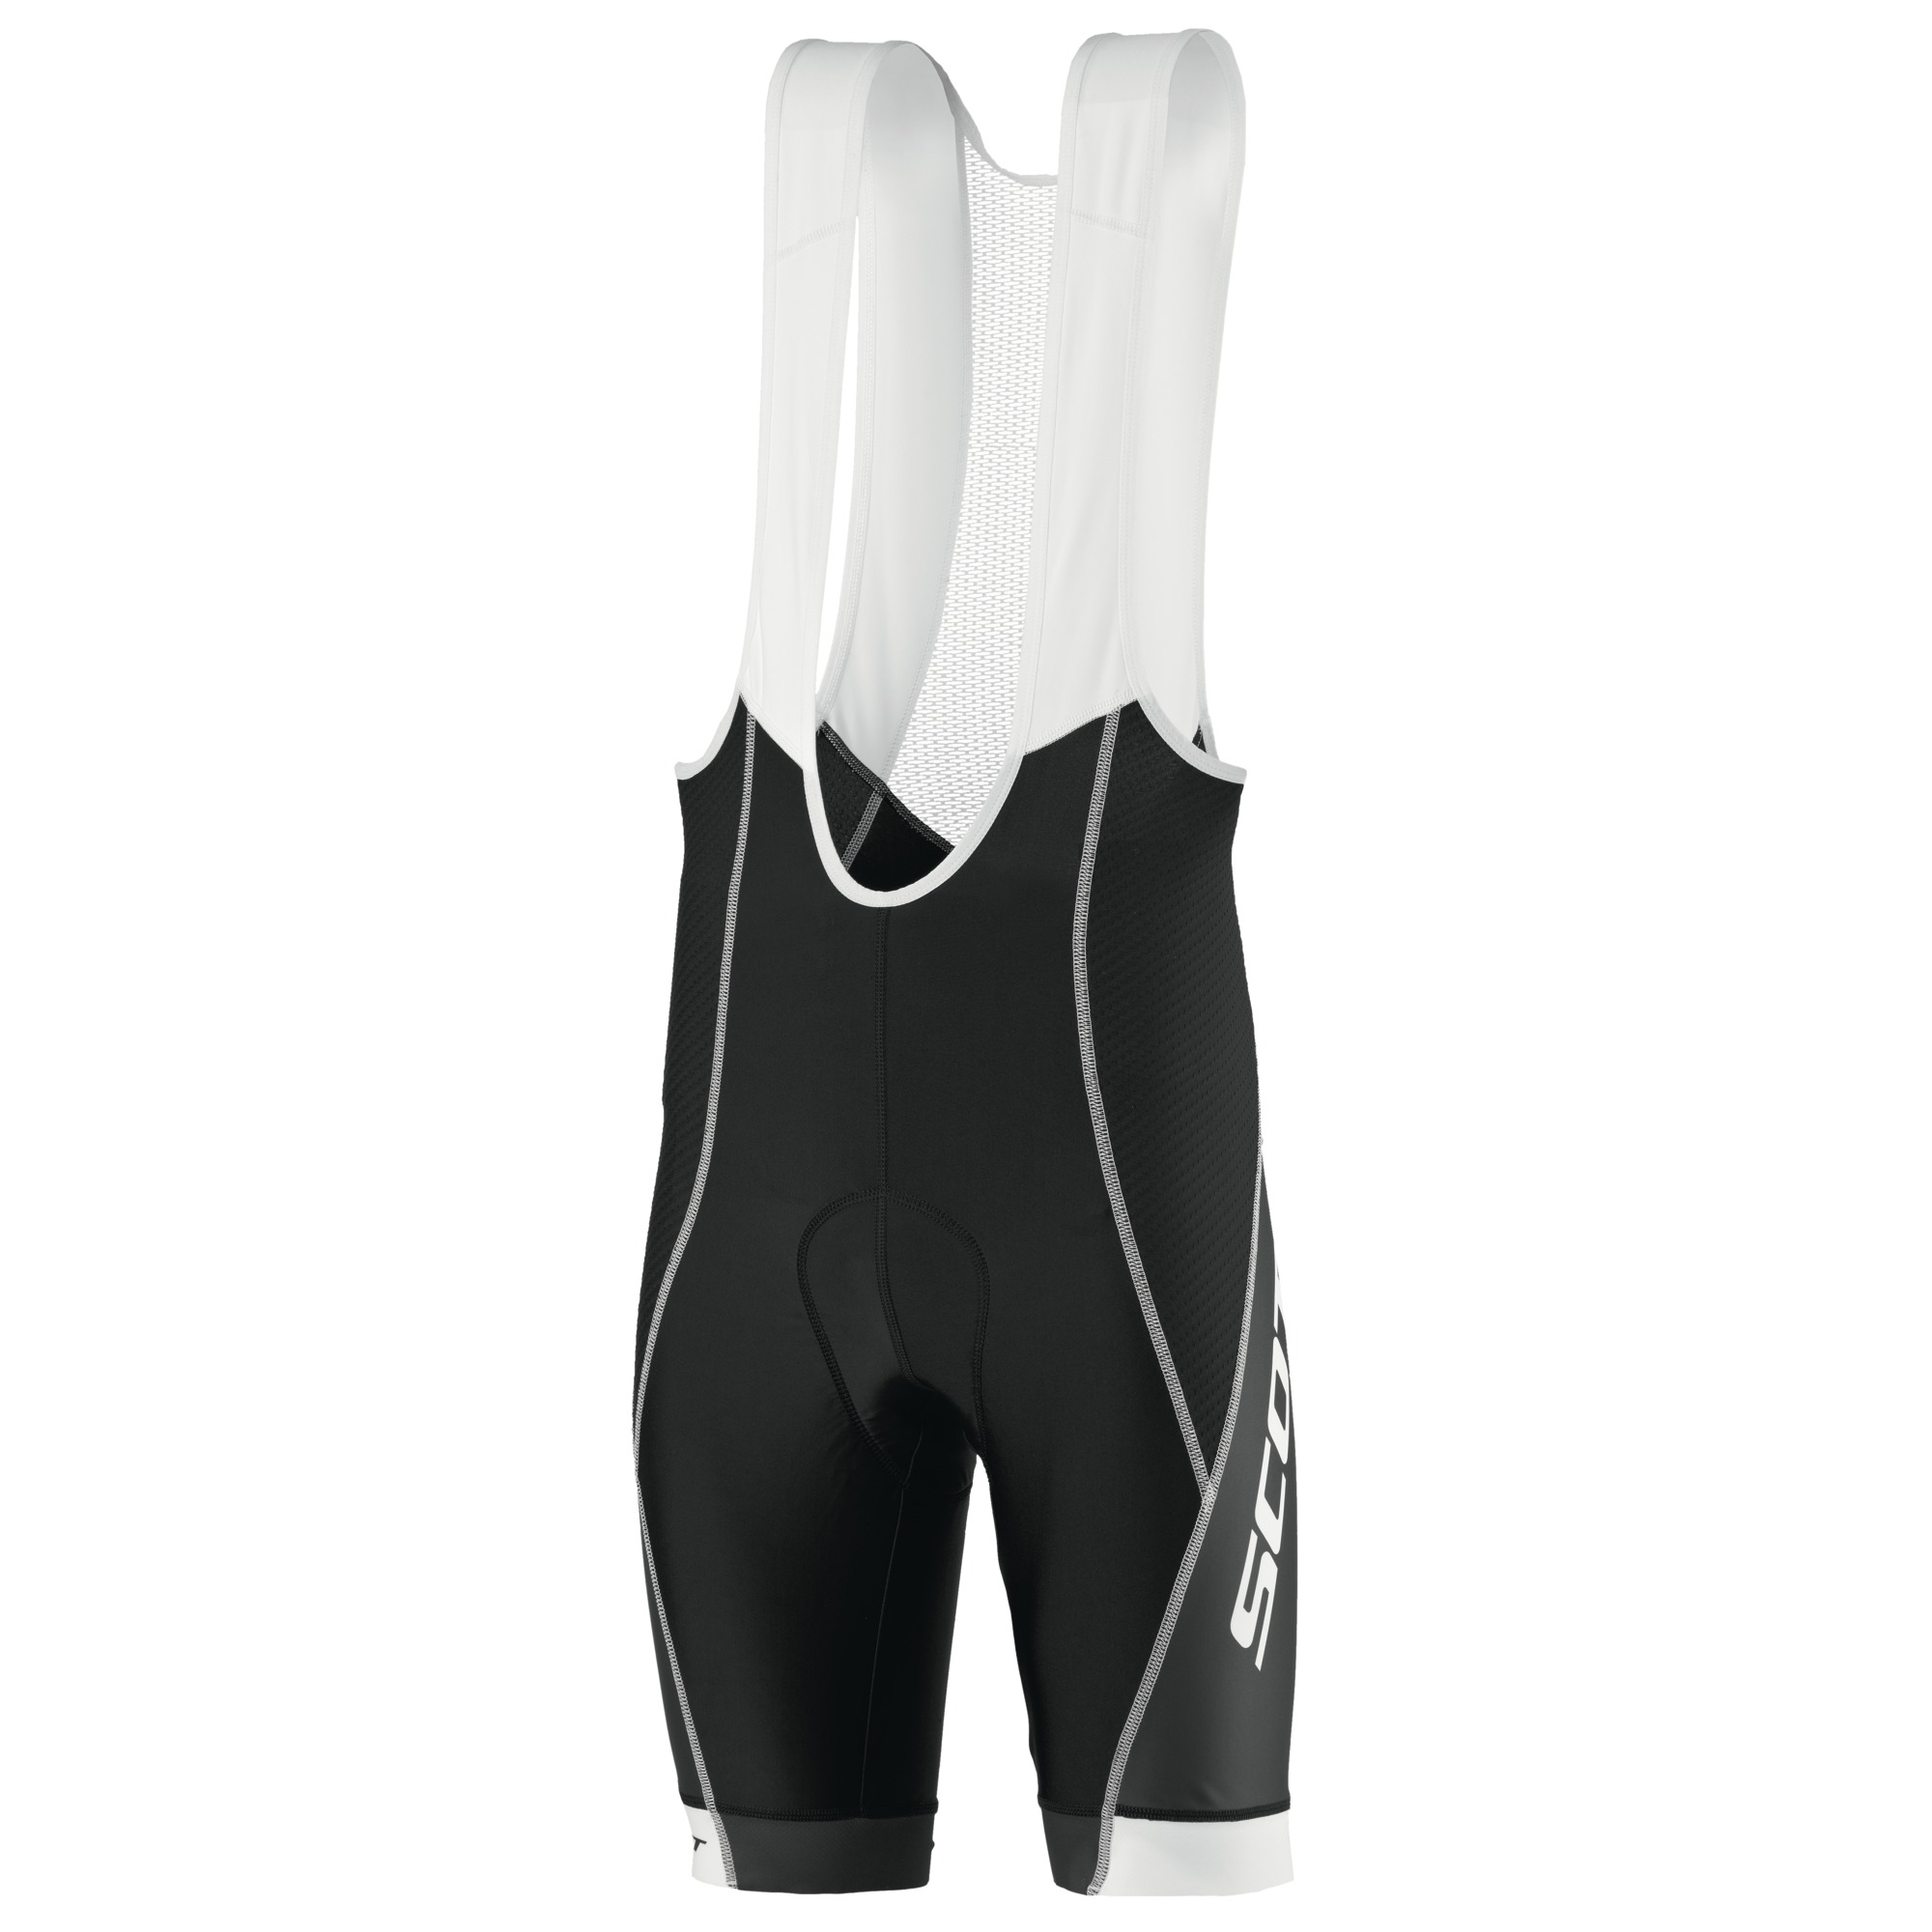 SCOTT Bibshorts Endurance 10 black/white L 2015